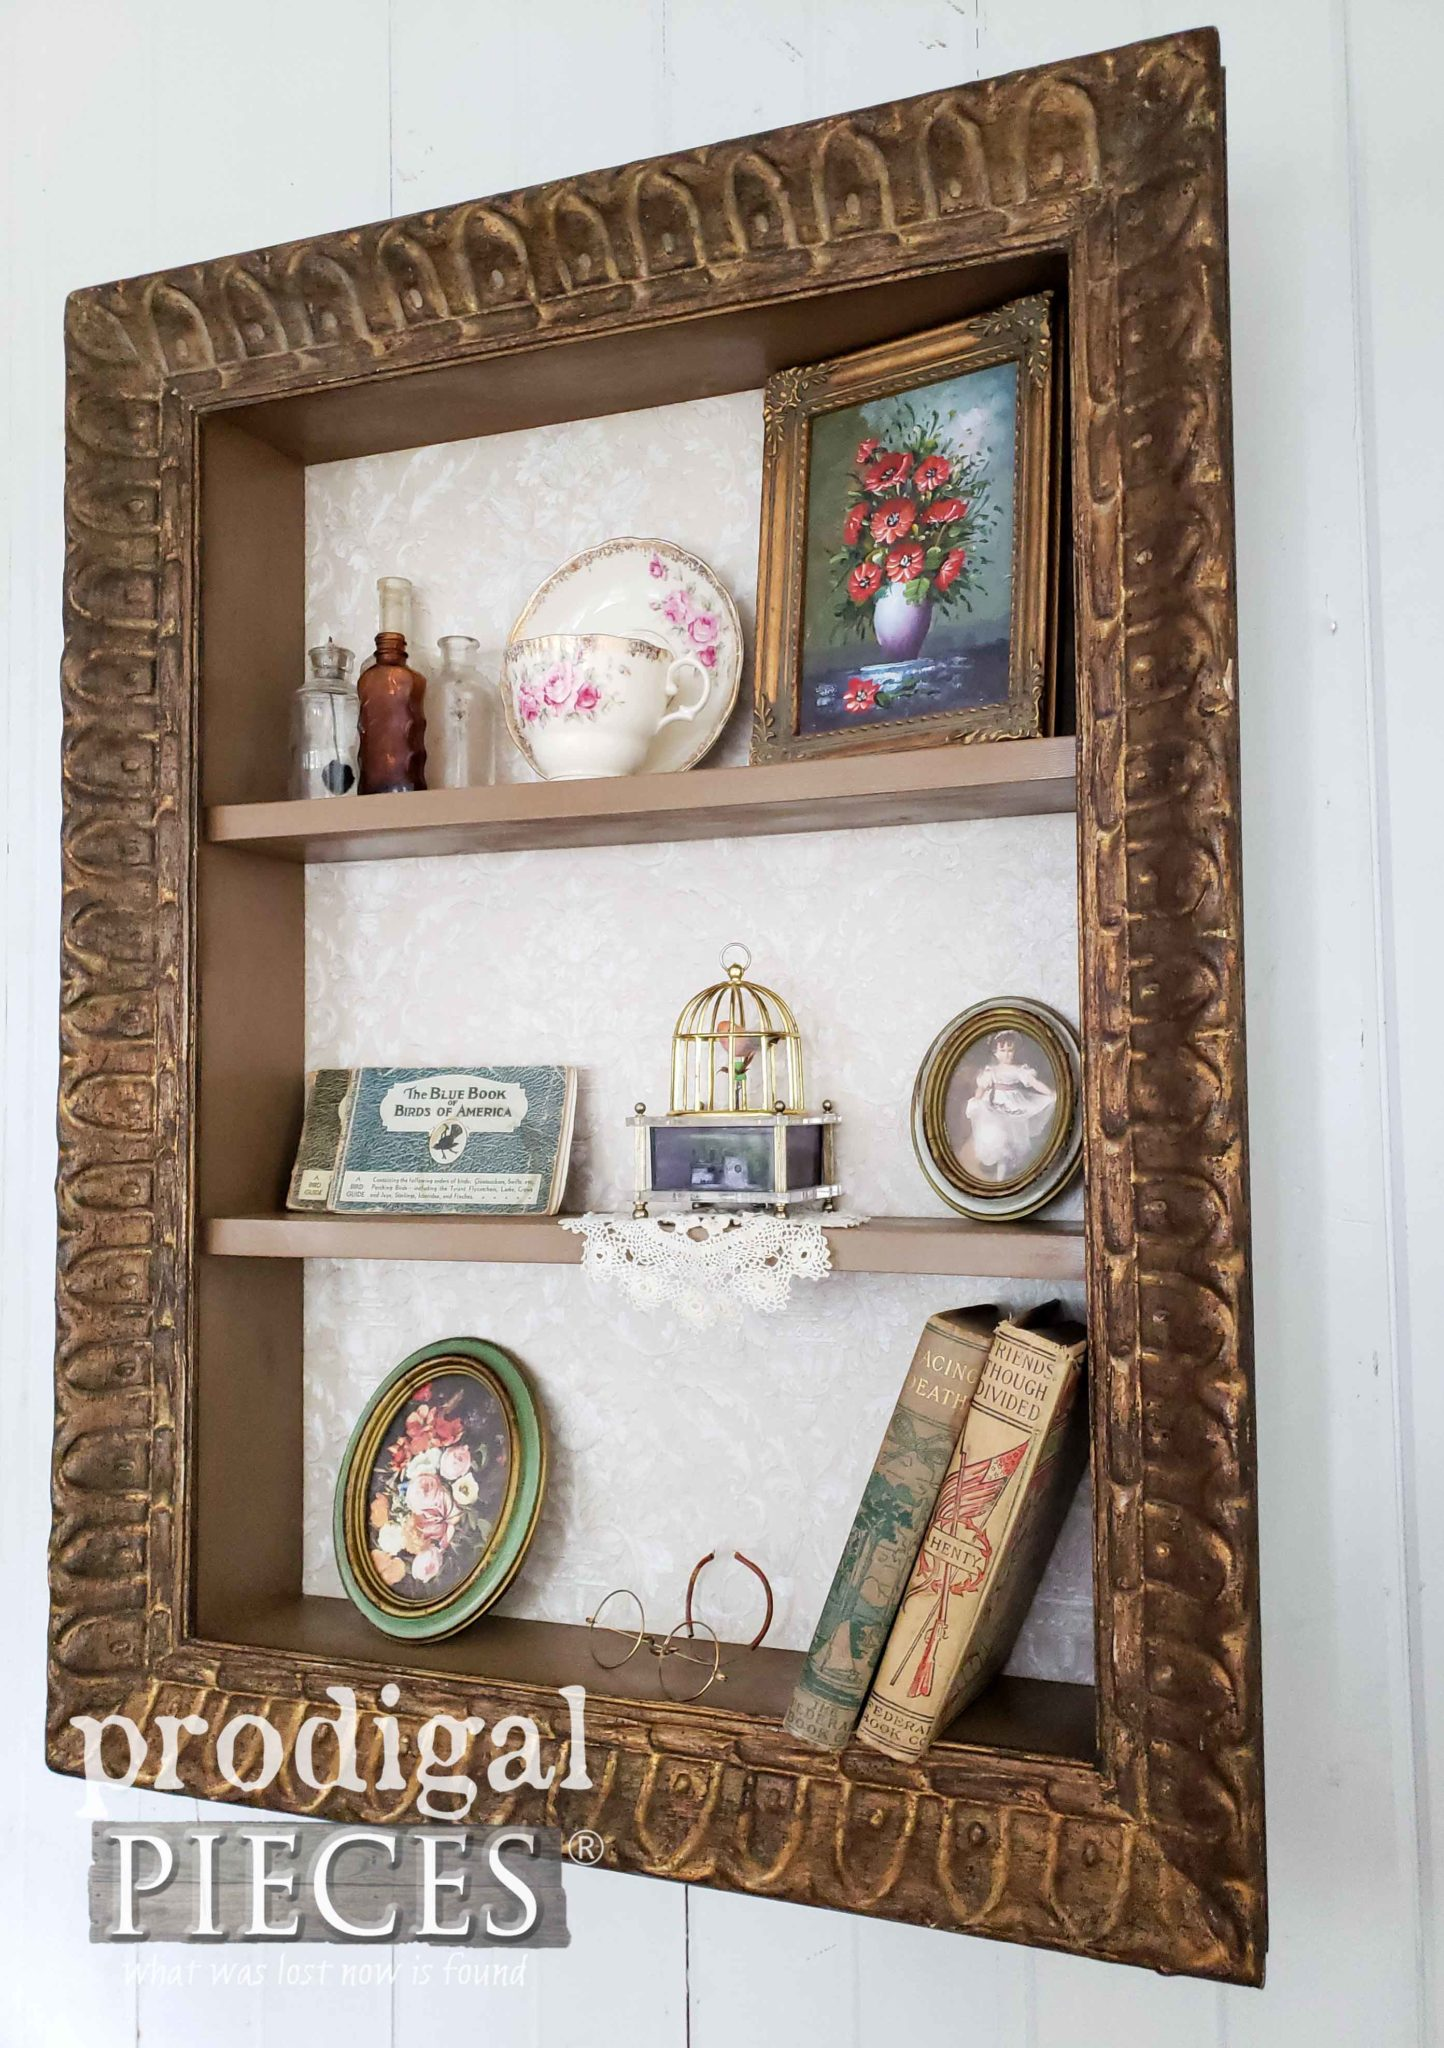 Vintage Picture Frame Turned Decorative Shelf by Larissa of Prodigal Pieces | prodigalpieces.com